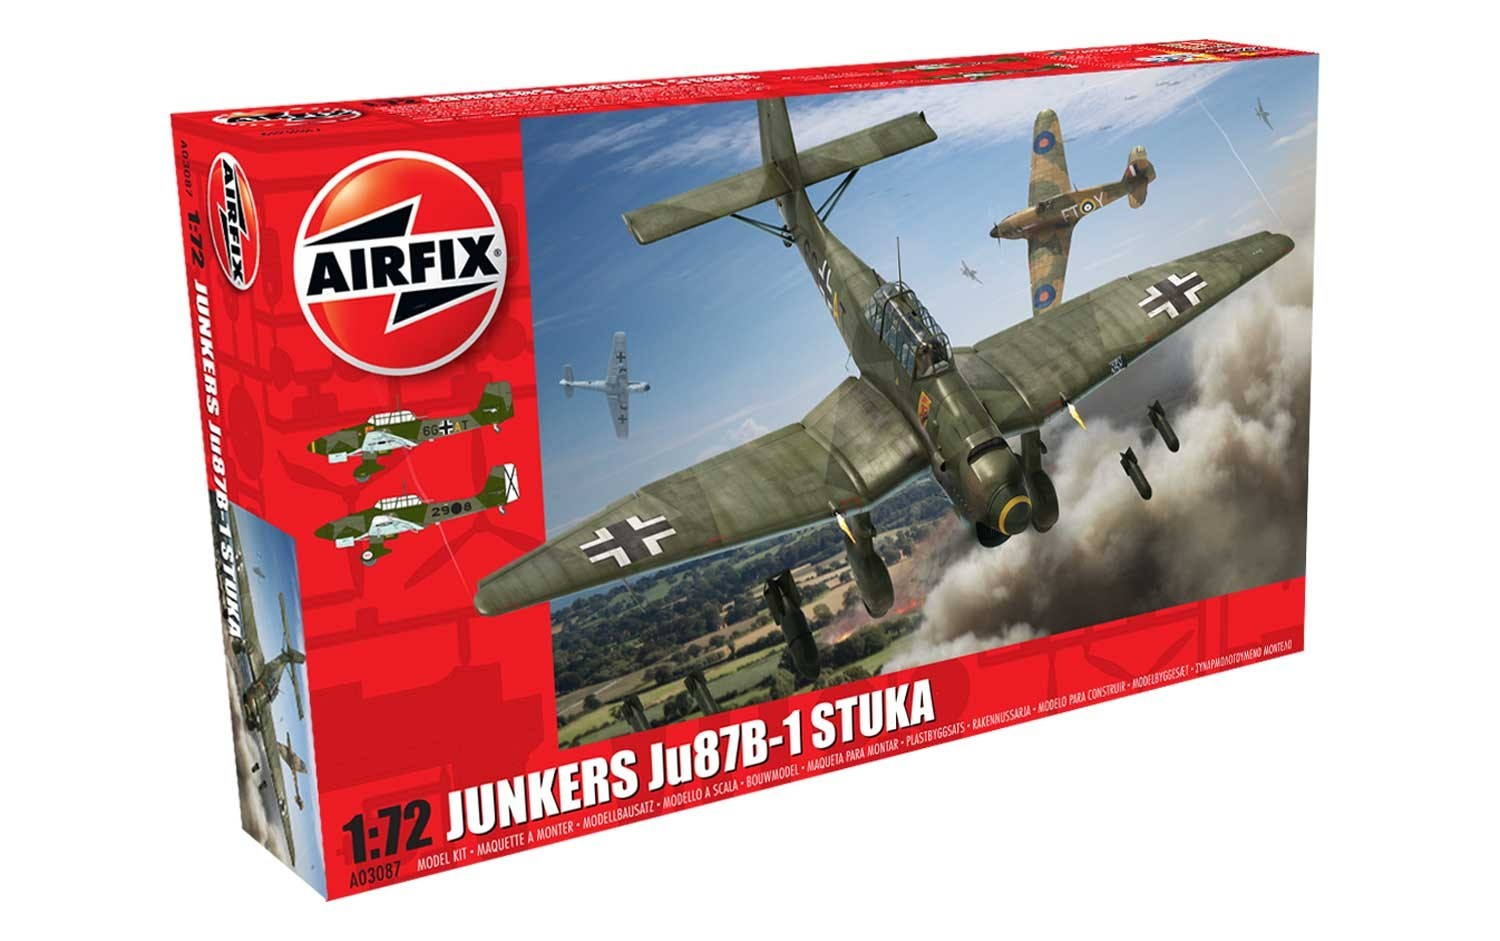 Airfix Junkers Ju87 B-1 Stuka 1:72 Scale Model Kit image